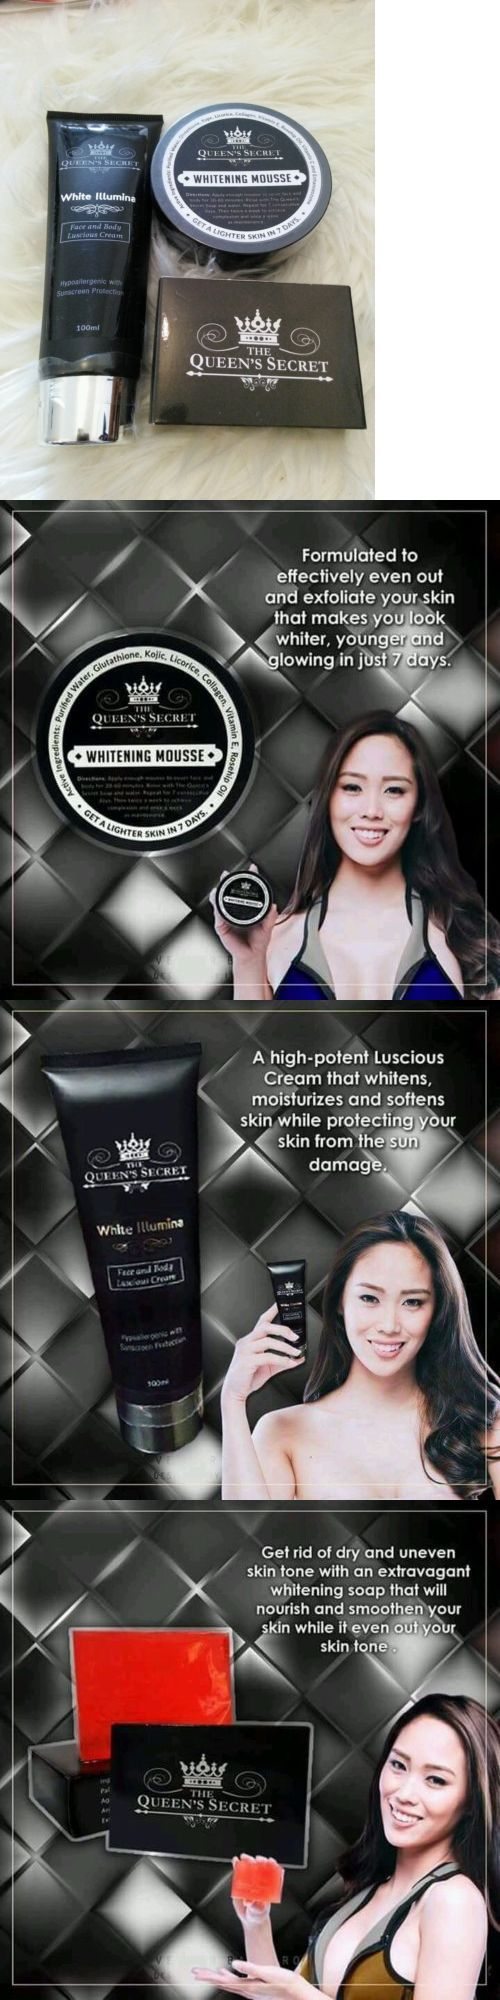 Lightening Cream: The Queens Secret Skin Care Bundle (Face And Body) Whitening, Anti-Aging -> BUY IT NOW ONLY: $42.75 on eBay!